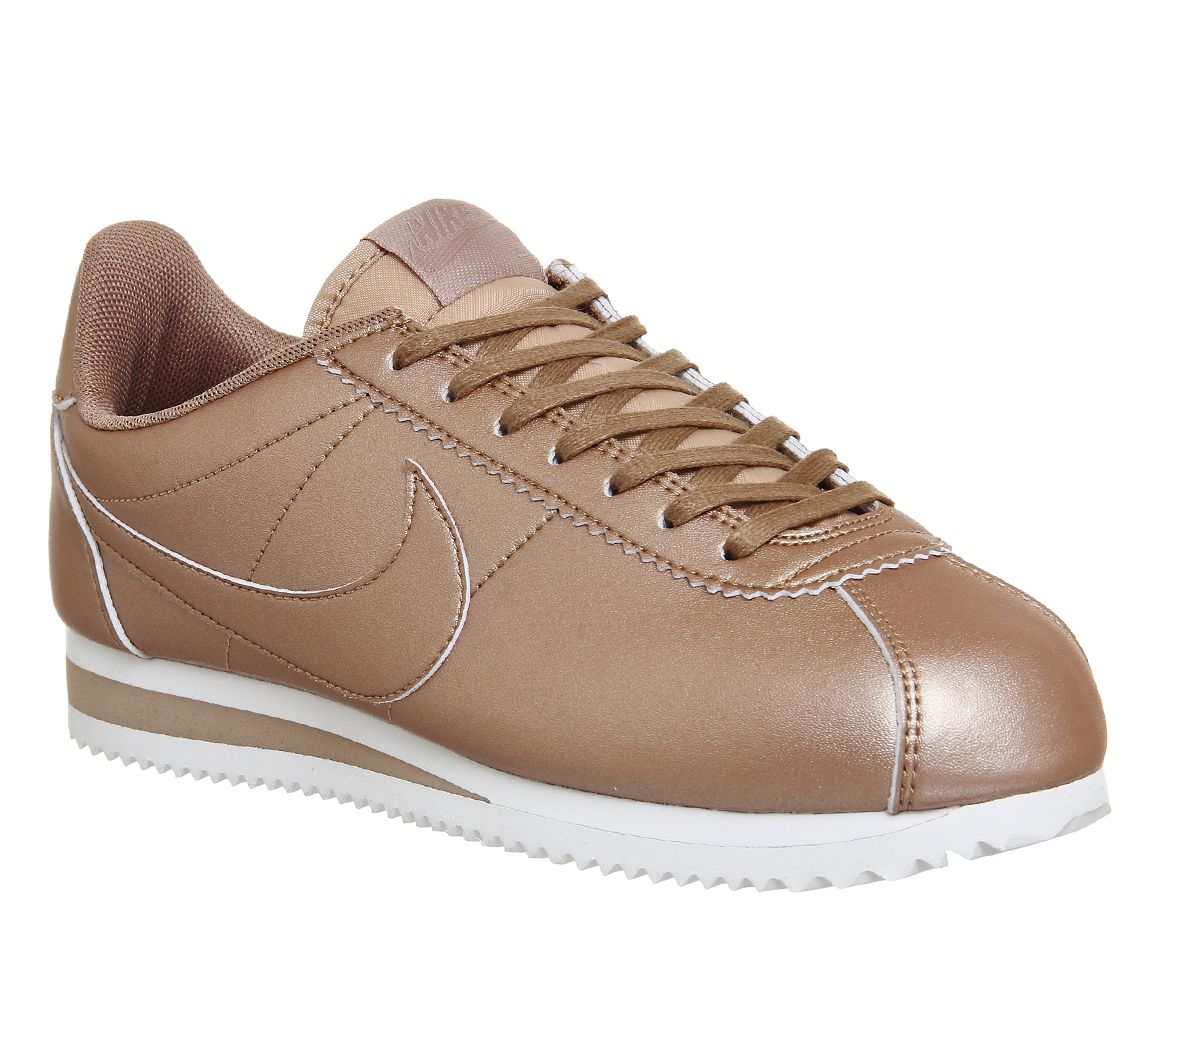 2a63992be0fb Nike Classic Cortez Og Metallic Rose Gold - Hers trainers